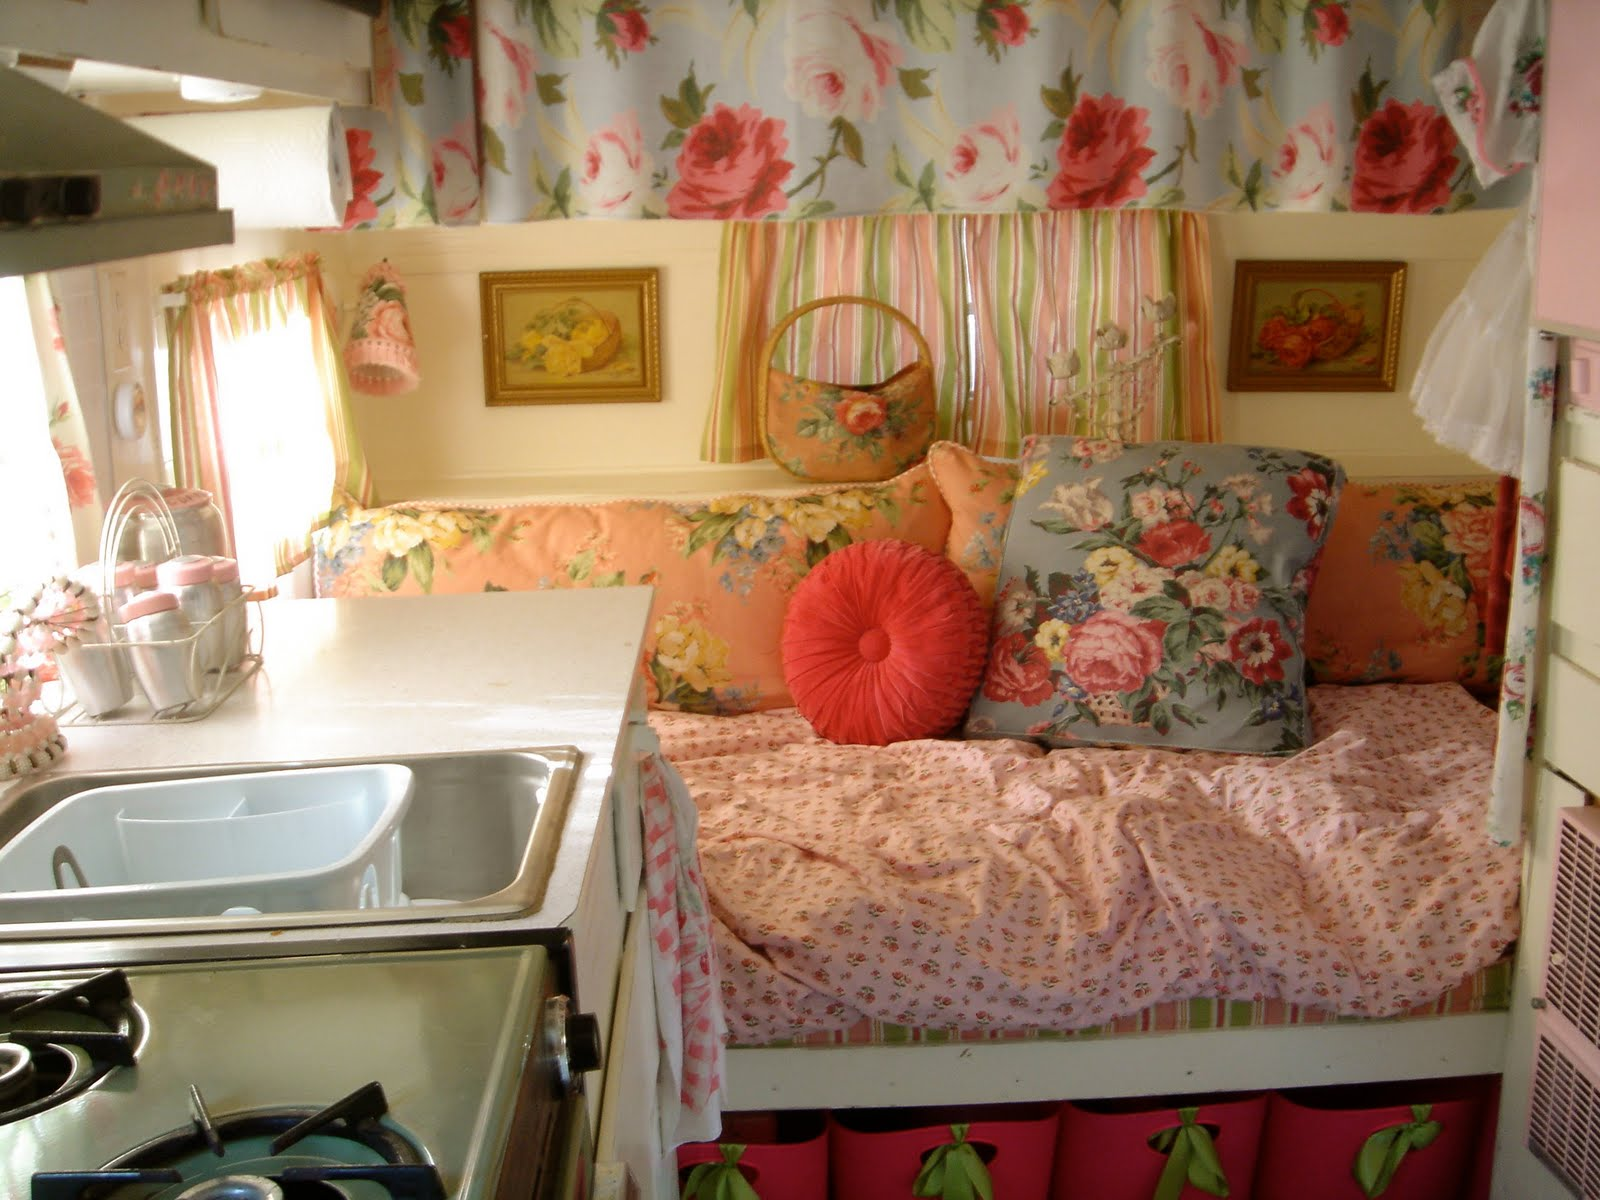 kitchen-and-hideaway-bed-again